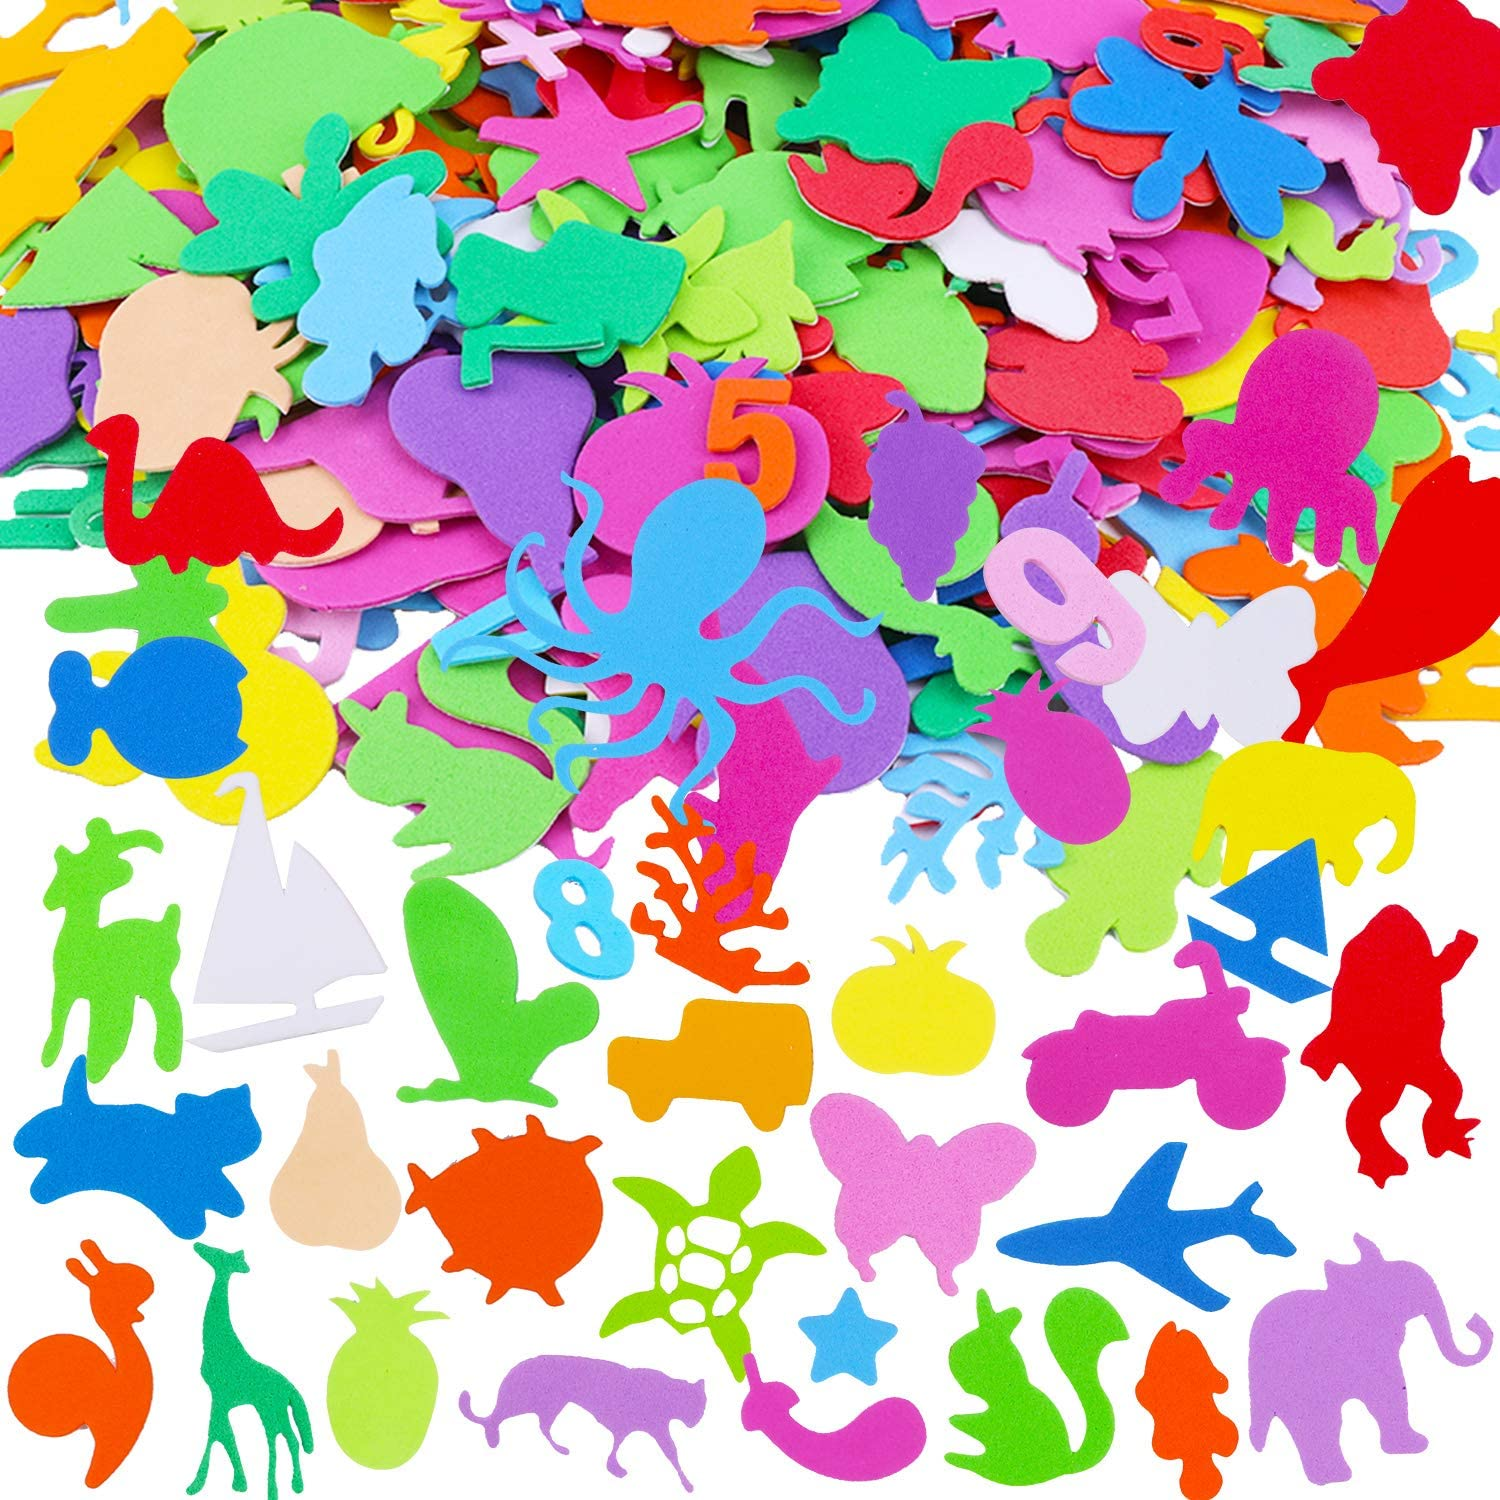 Arts and DIY Projects Cards Foam Sealife Fruit Cars Insects Numbers Animal Shape Stickers Puffy Scrapbook Stickers for Kids Crafts HOWAF 430 Pack Self Adhesive Foam Sticker for Children Crafts